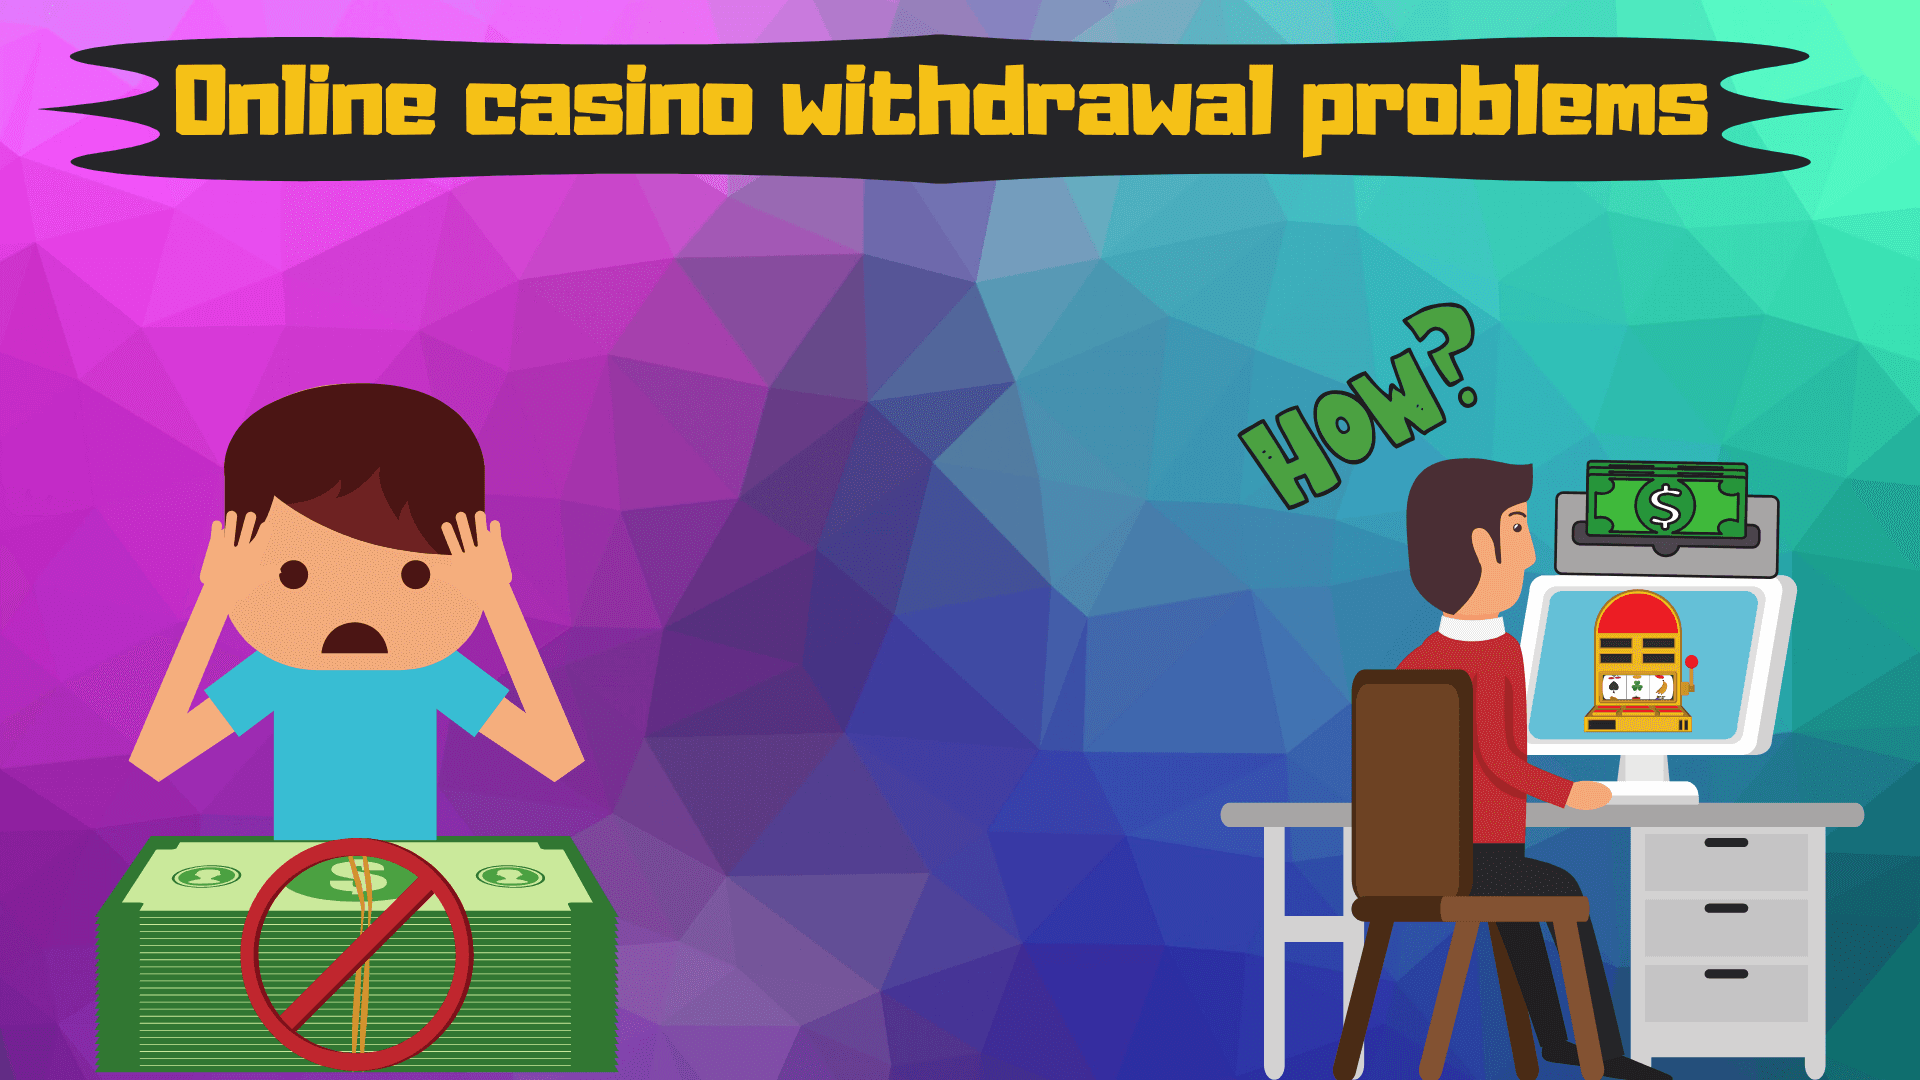 Online Casino Withdrawal Problems